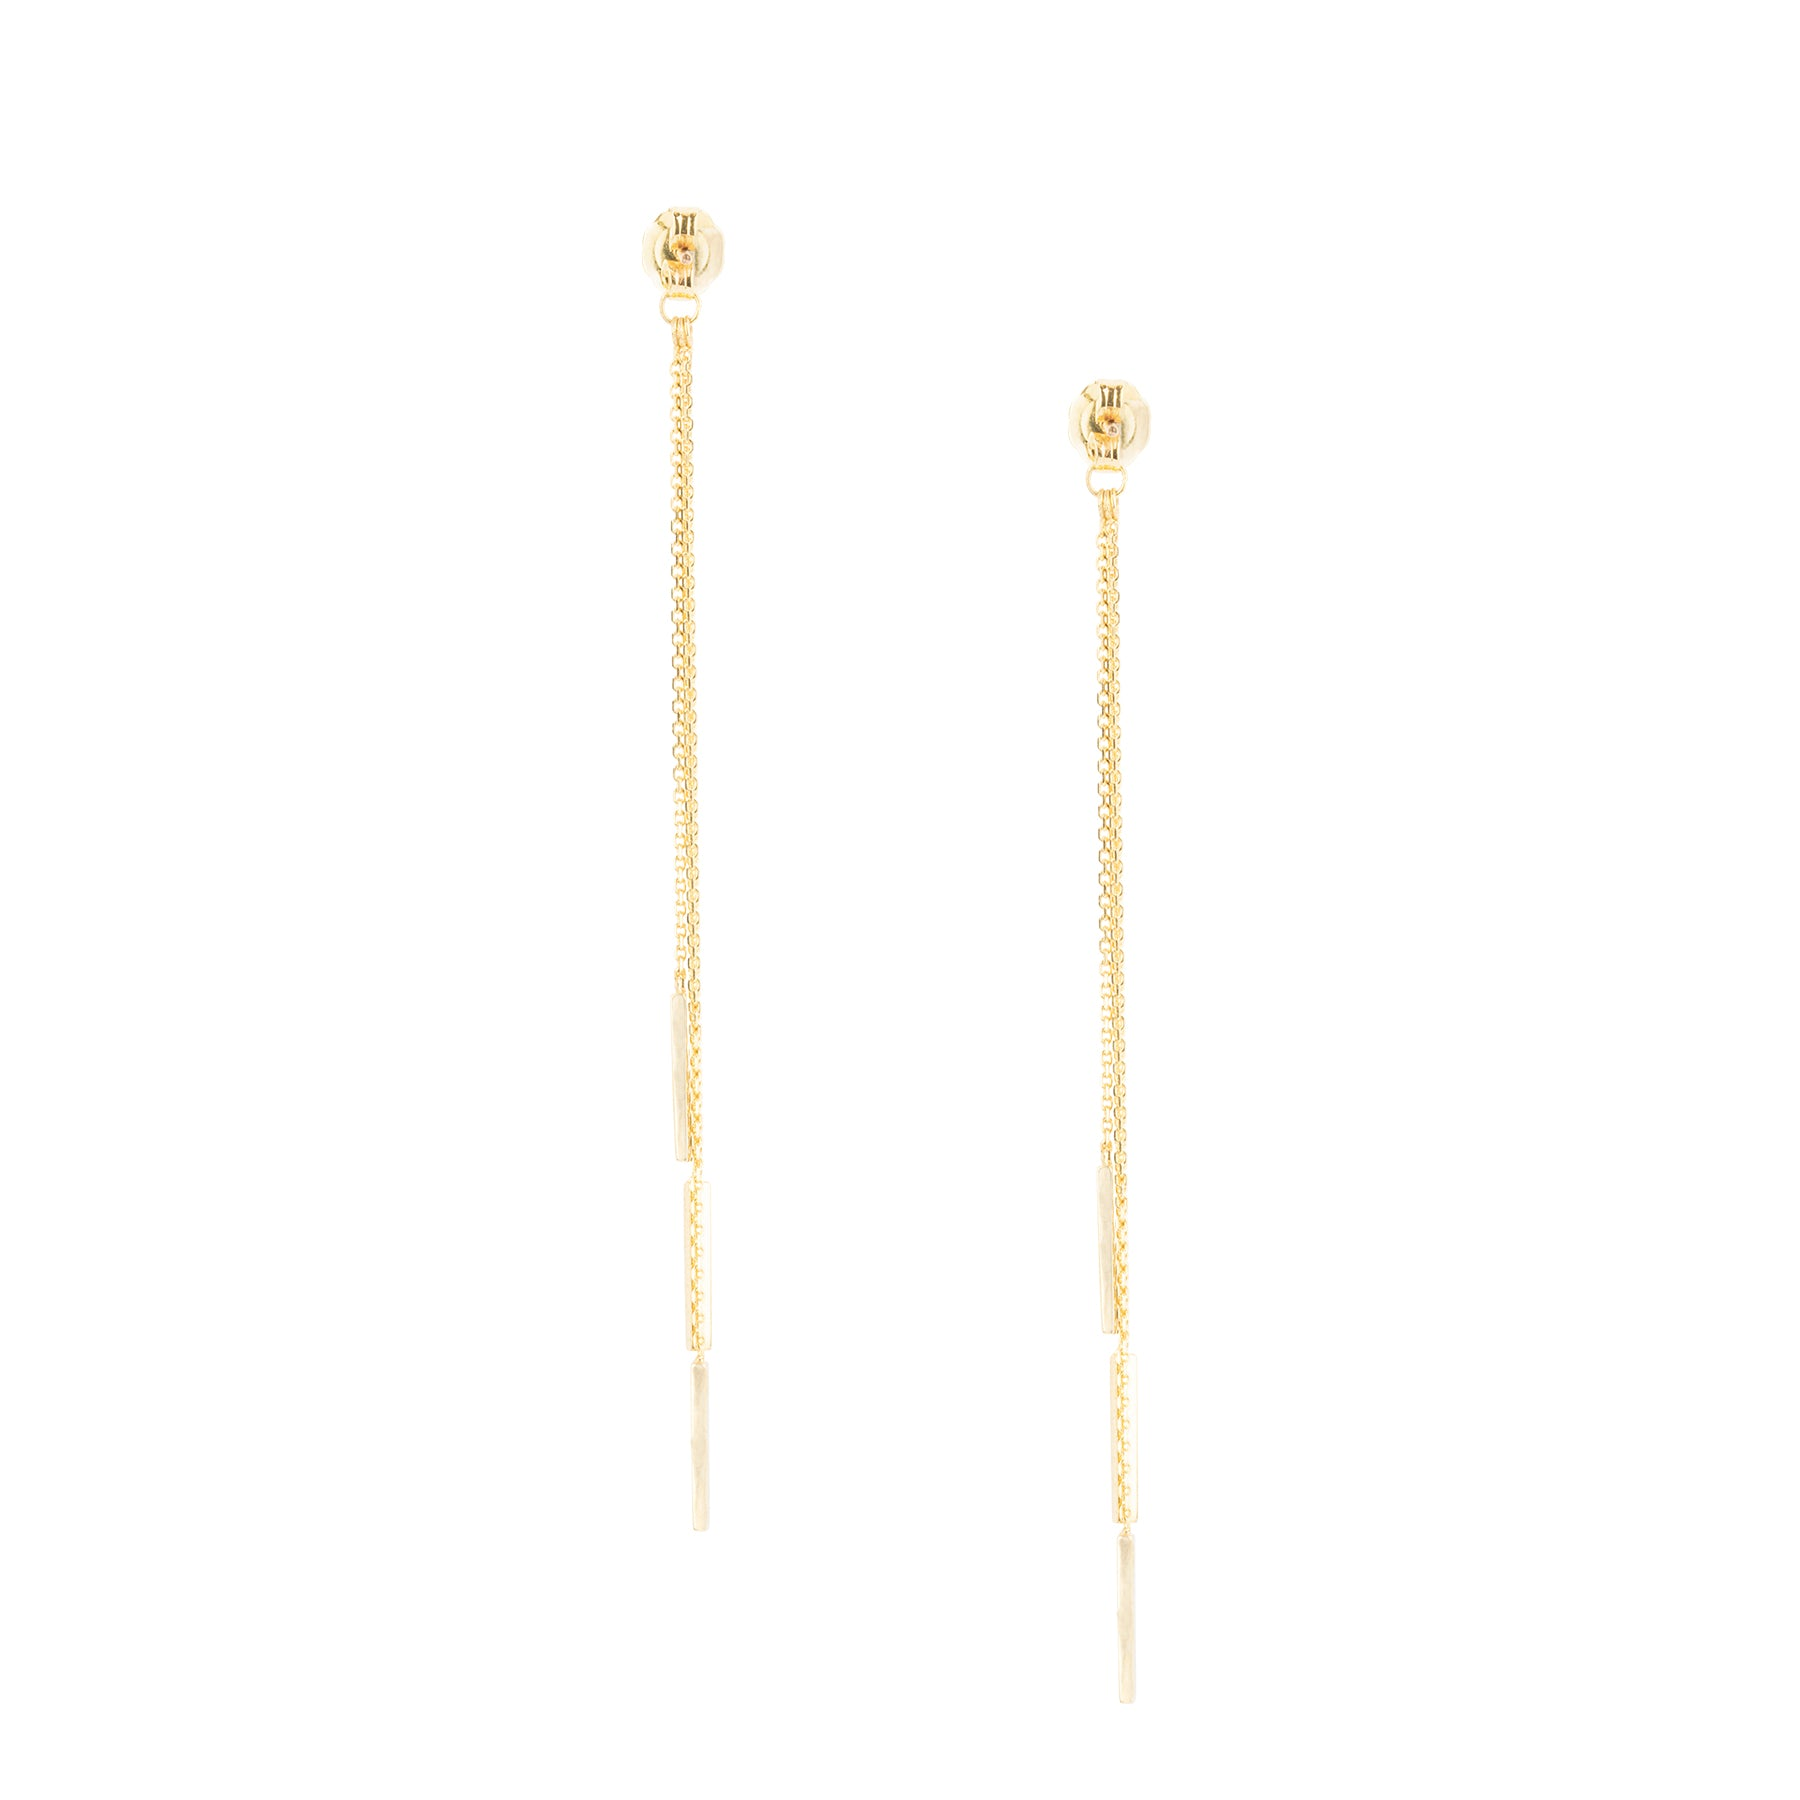 3 Bar Chain Earring Backings